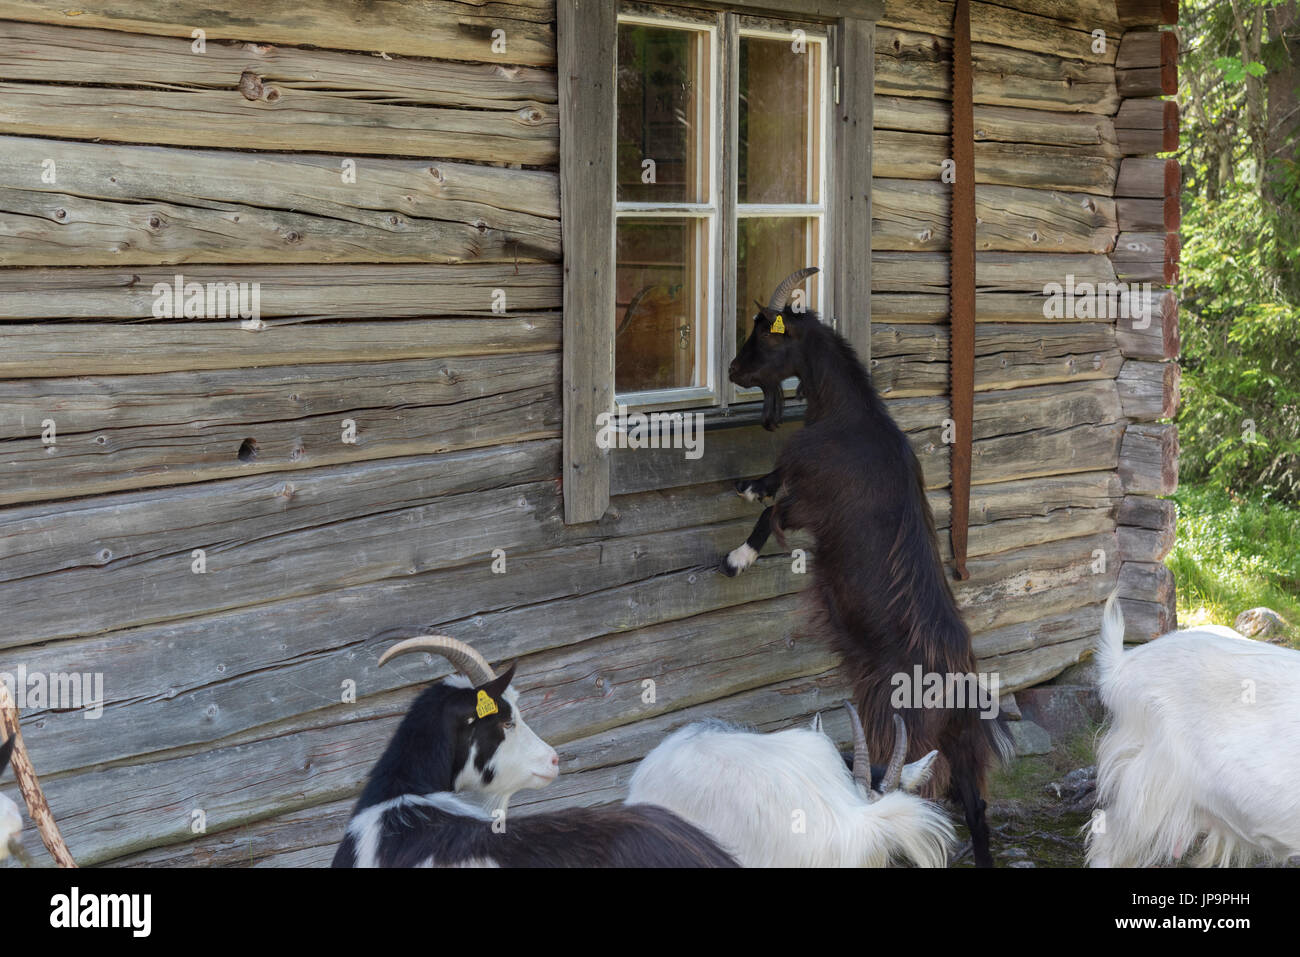 A herd of goats are grazing at a mountain farm, it's their summer pasture. The curious goats examine everything. Dalarna, Sweden - Stock Image